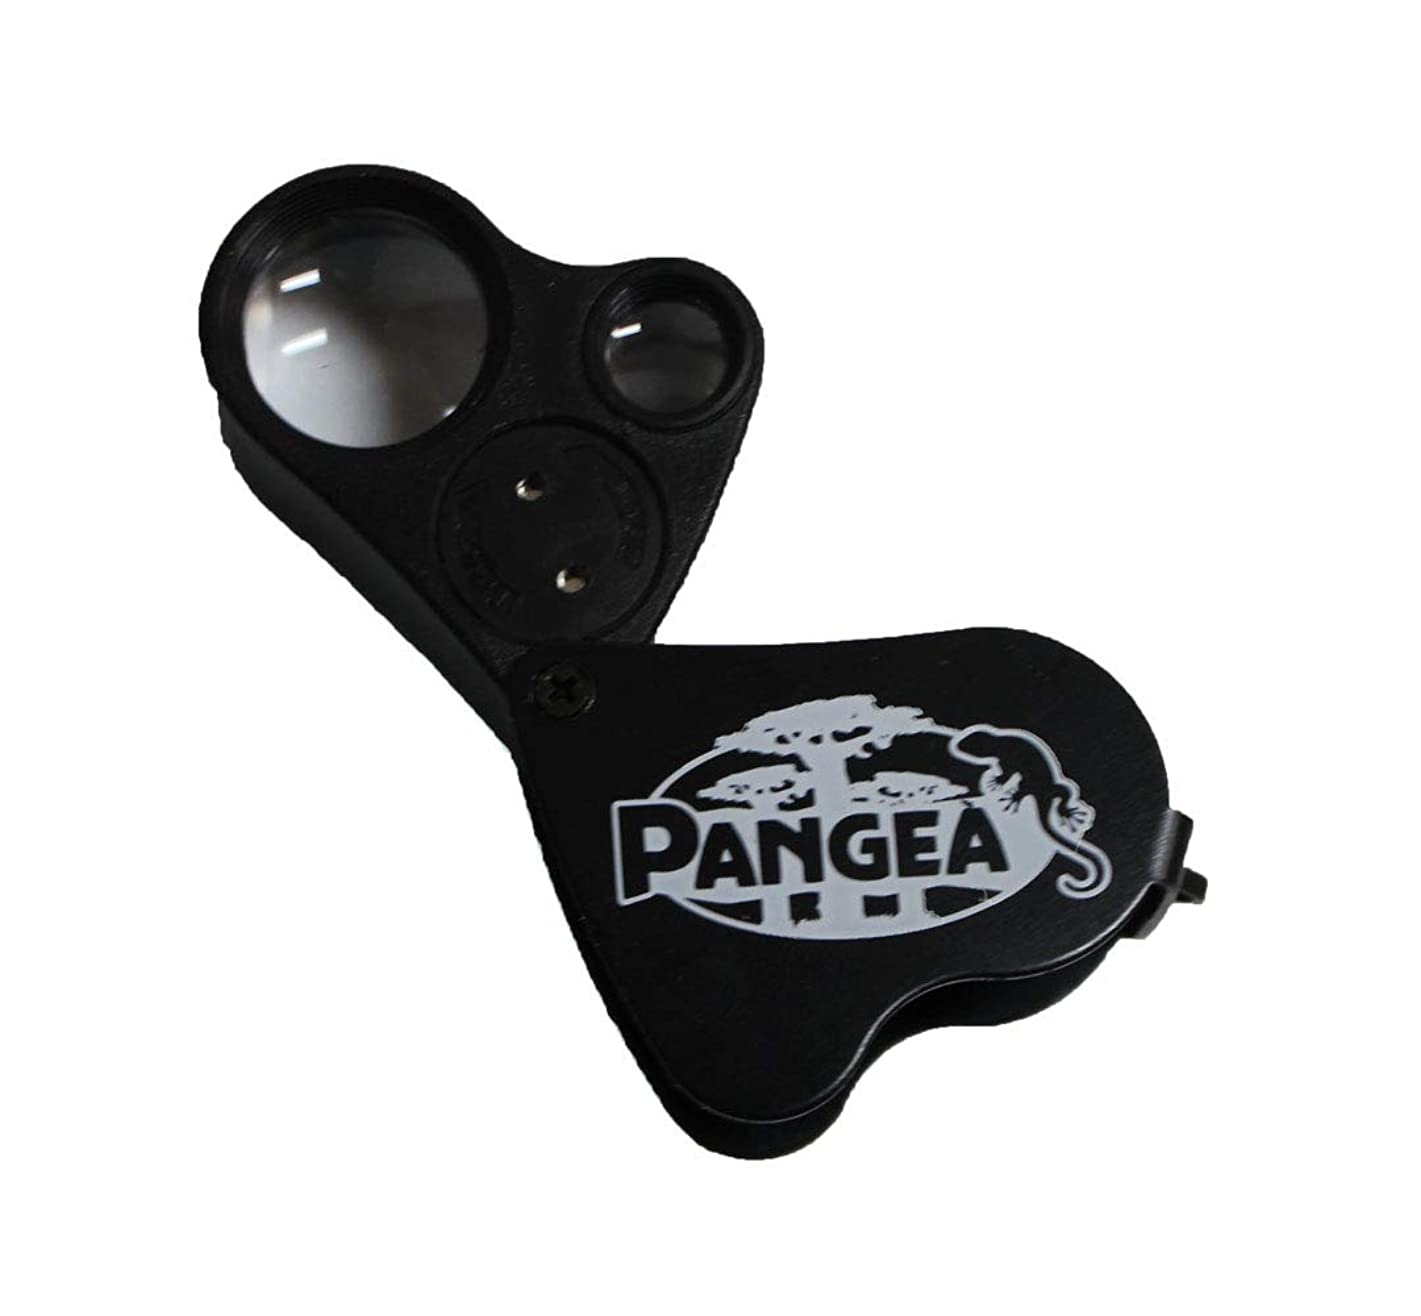 Pangea LED Dual 30X & 60X Magnifying Loupe Reptiles, Jewelry, Stamps, Horticulture, Etc